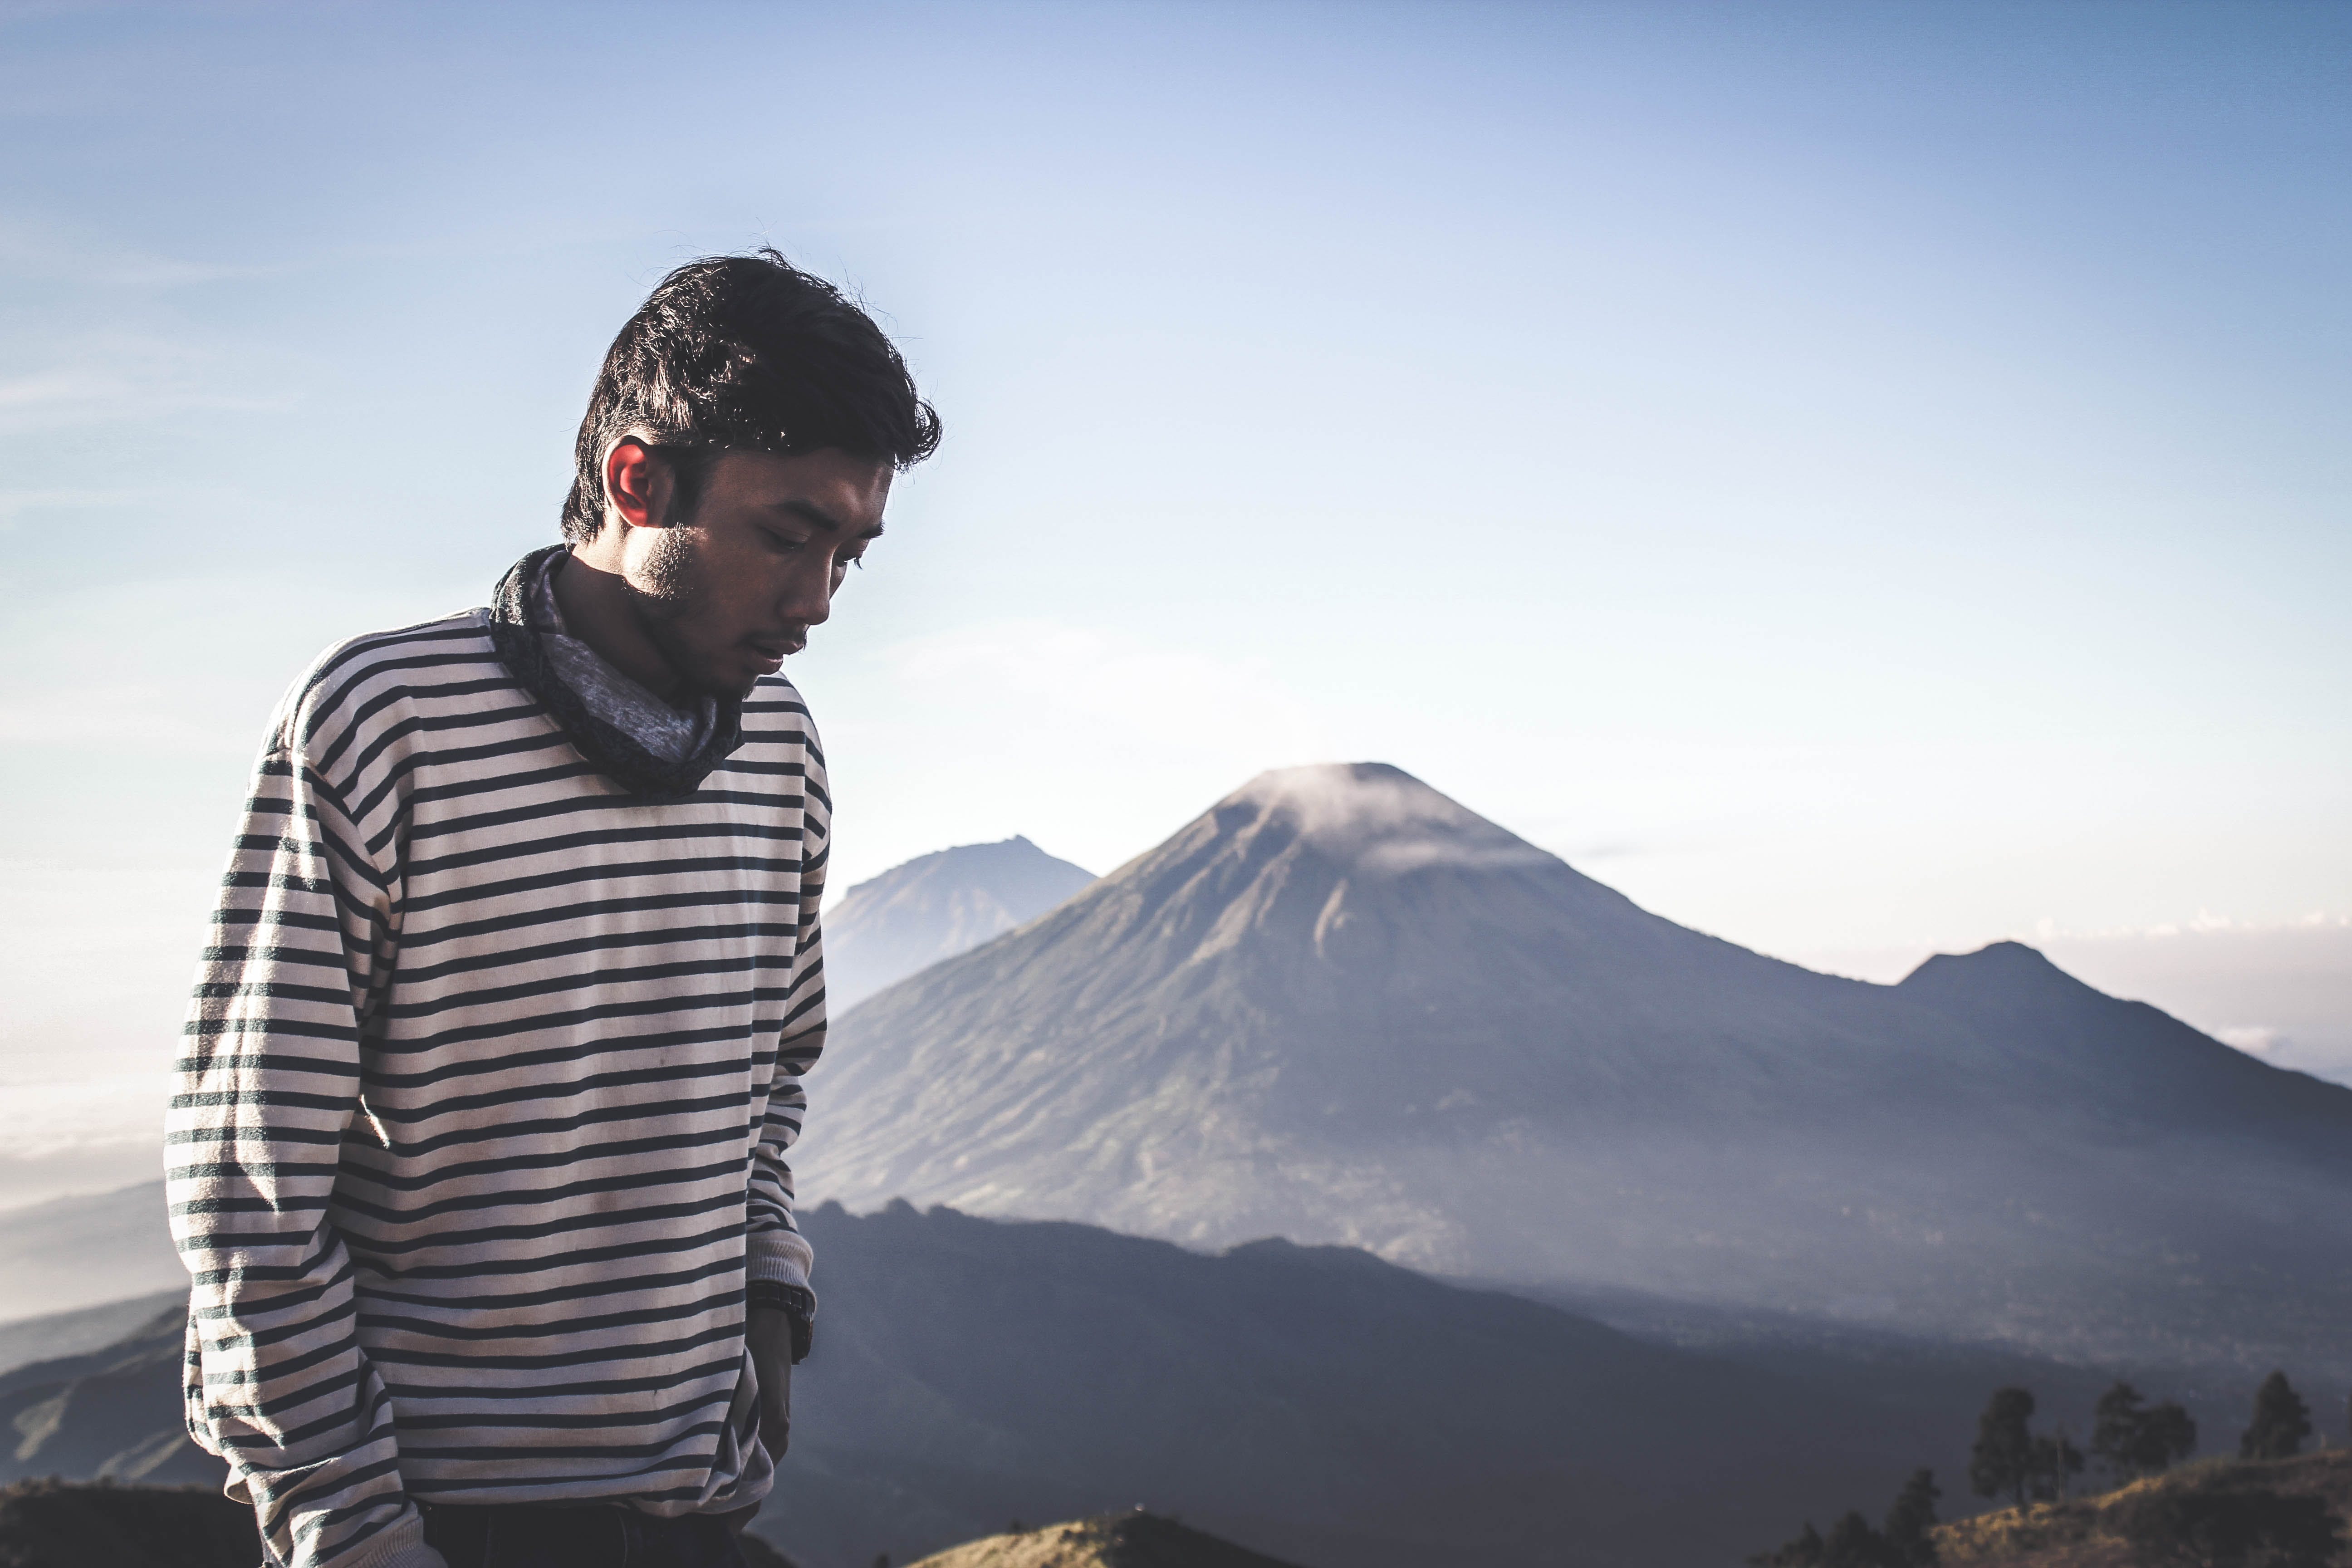 Person Wearing White and Black Striped Sweatshirt Standing in Front of Mountains